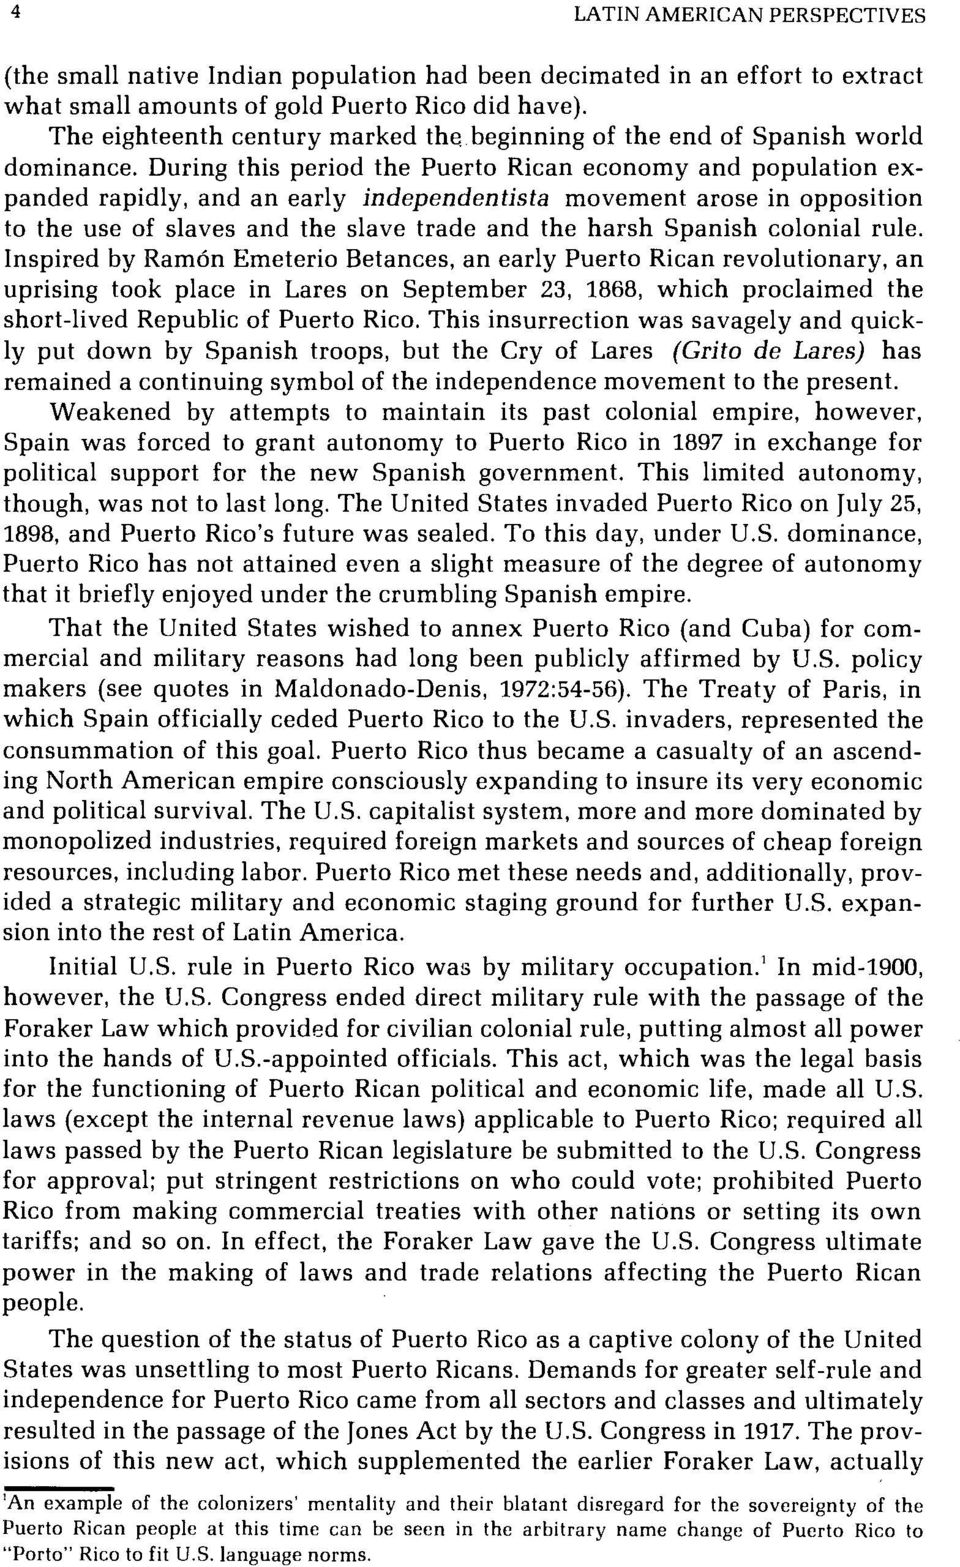 During this period the Puerto Rican economy and population expanded rapidly, and an early independentista movement arose in opposition to the use of slaves and the slave trade and the harsh Spanish